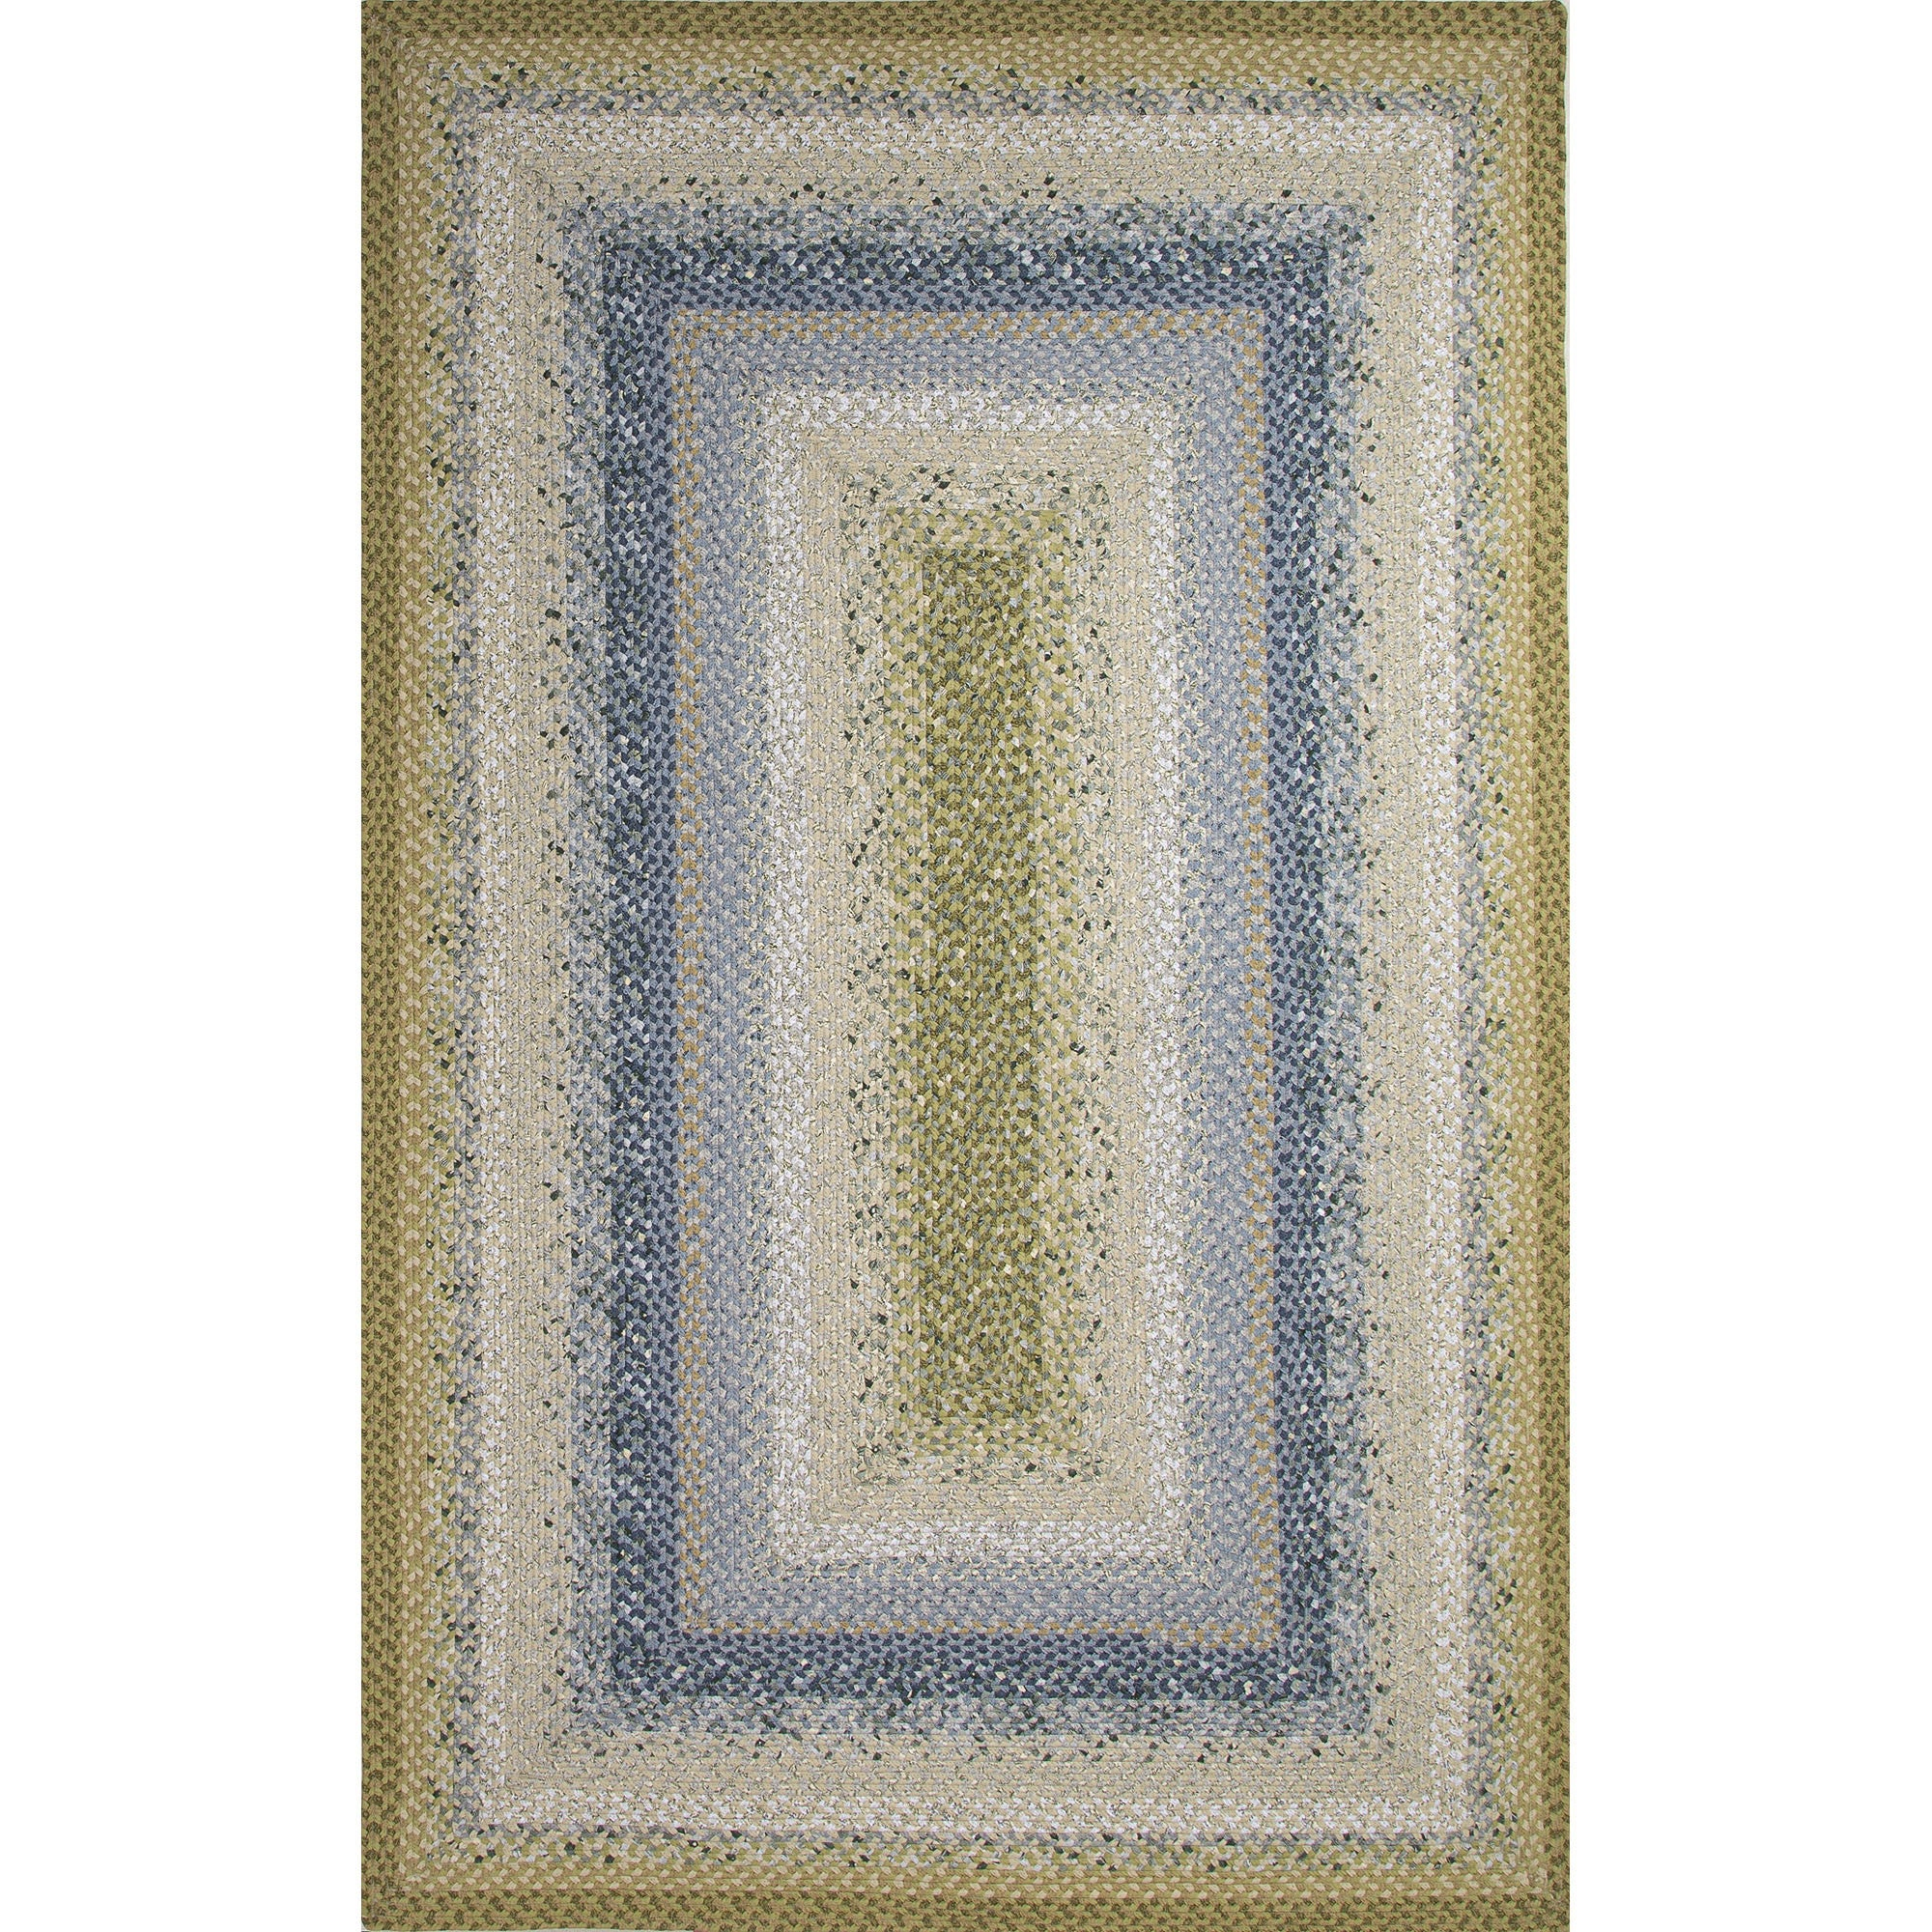 Jaipur Rugs Braided Solid Pattern Blue Green Cotton And